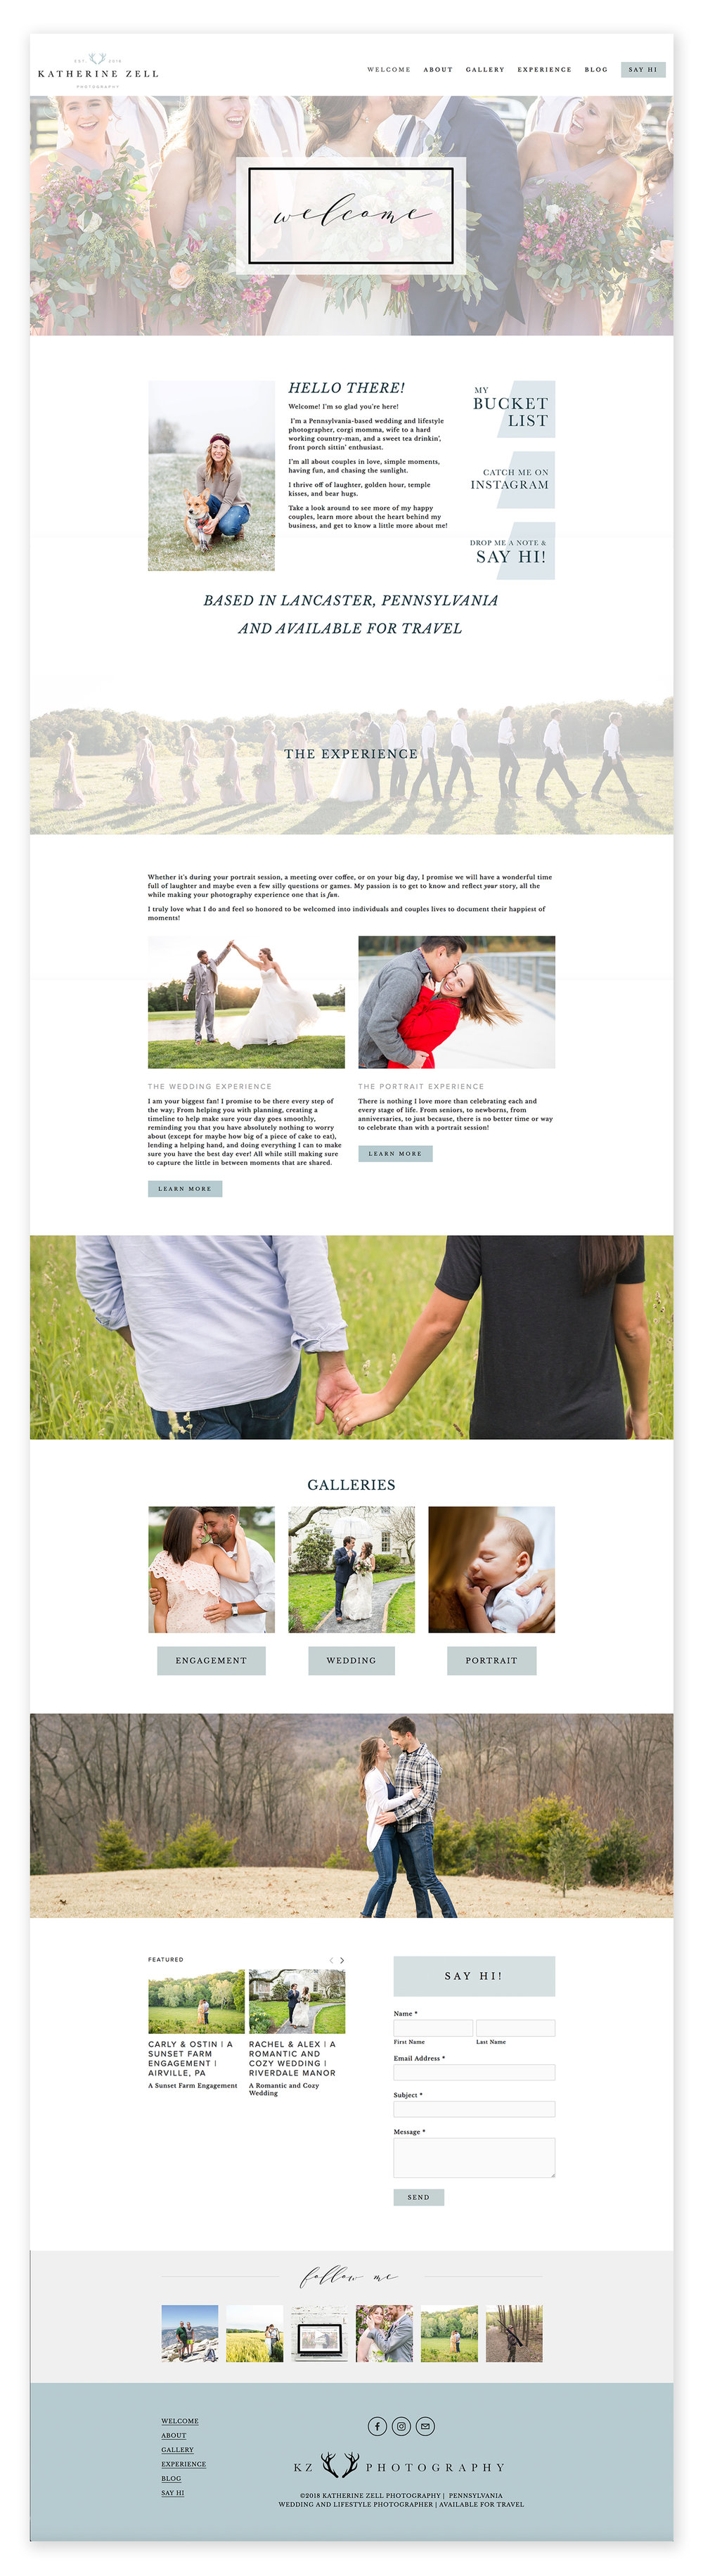 CE Studios: Wedding photographer website design Squarespace - Home page